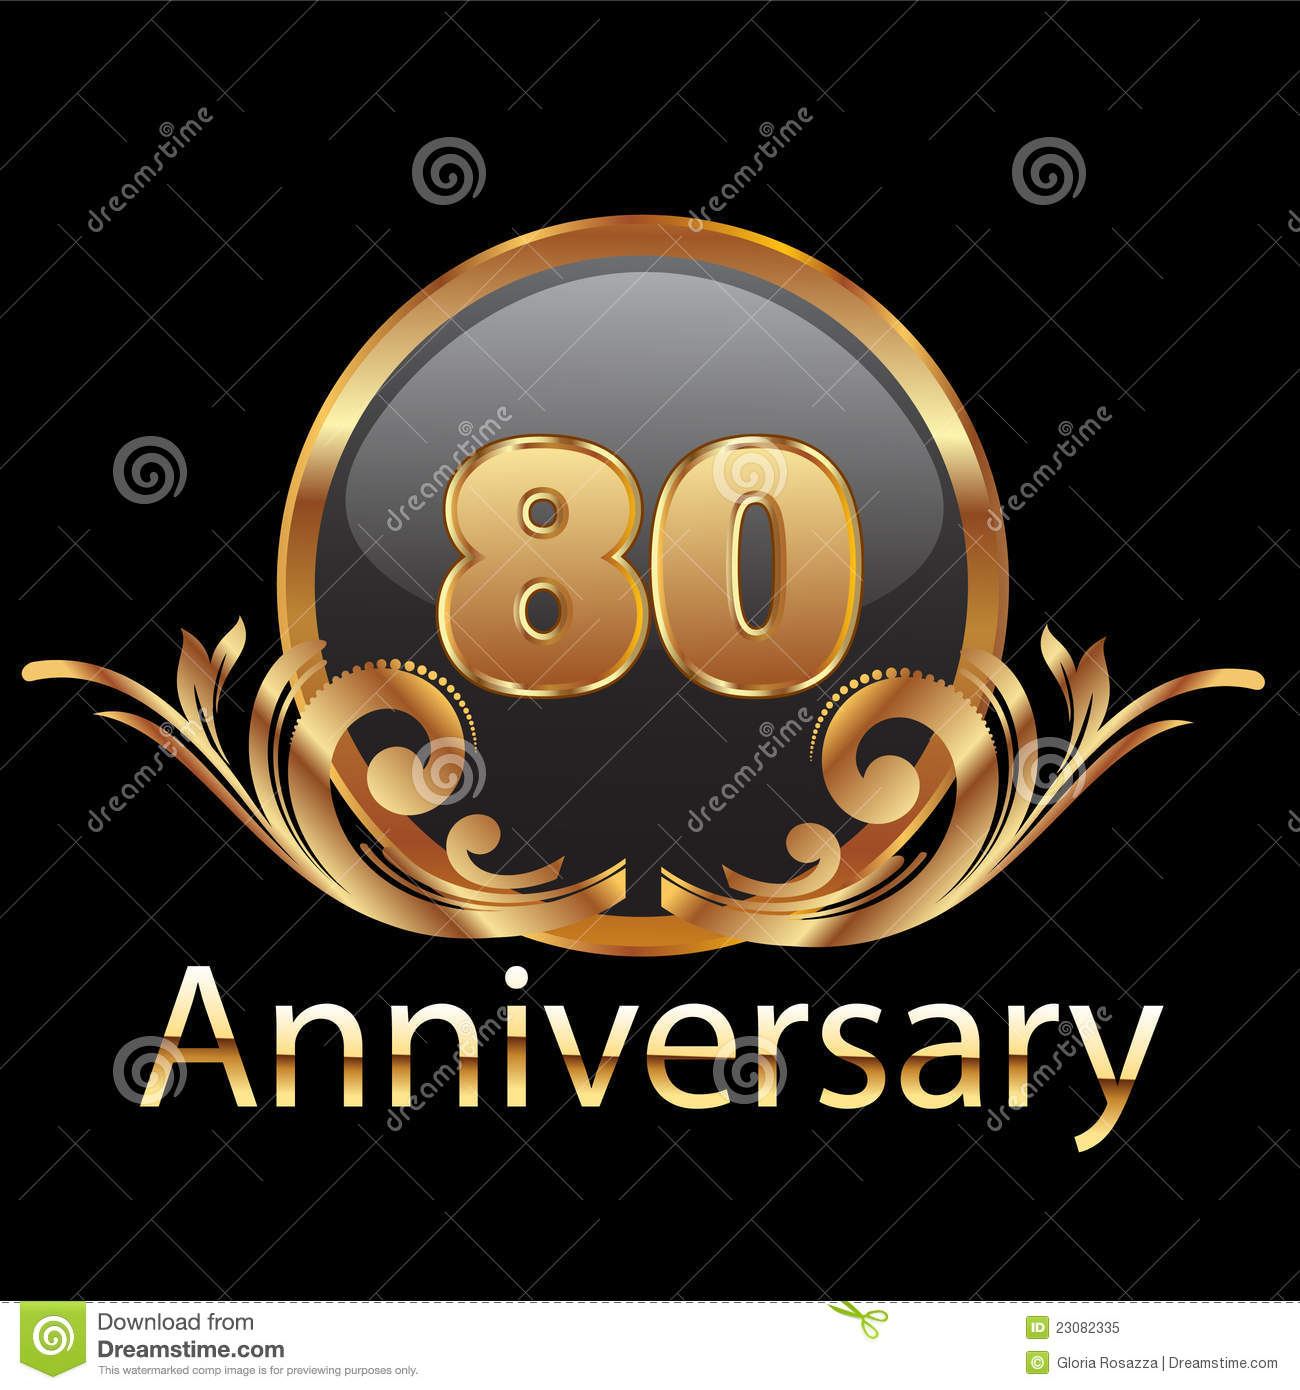 80th Wedding Anniversary Gift: 80th Anniversary Gold Stock Illustration. Image Of 80th